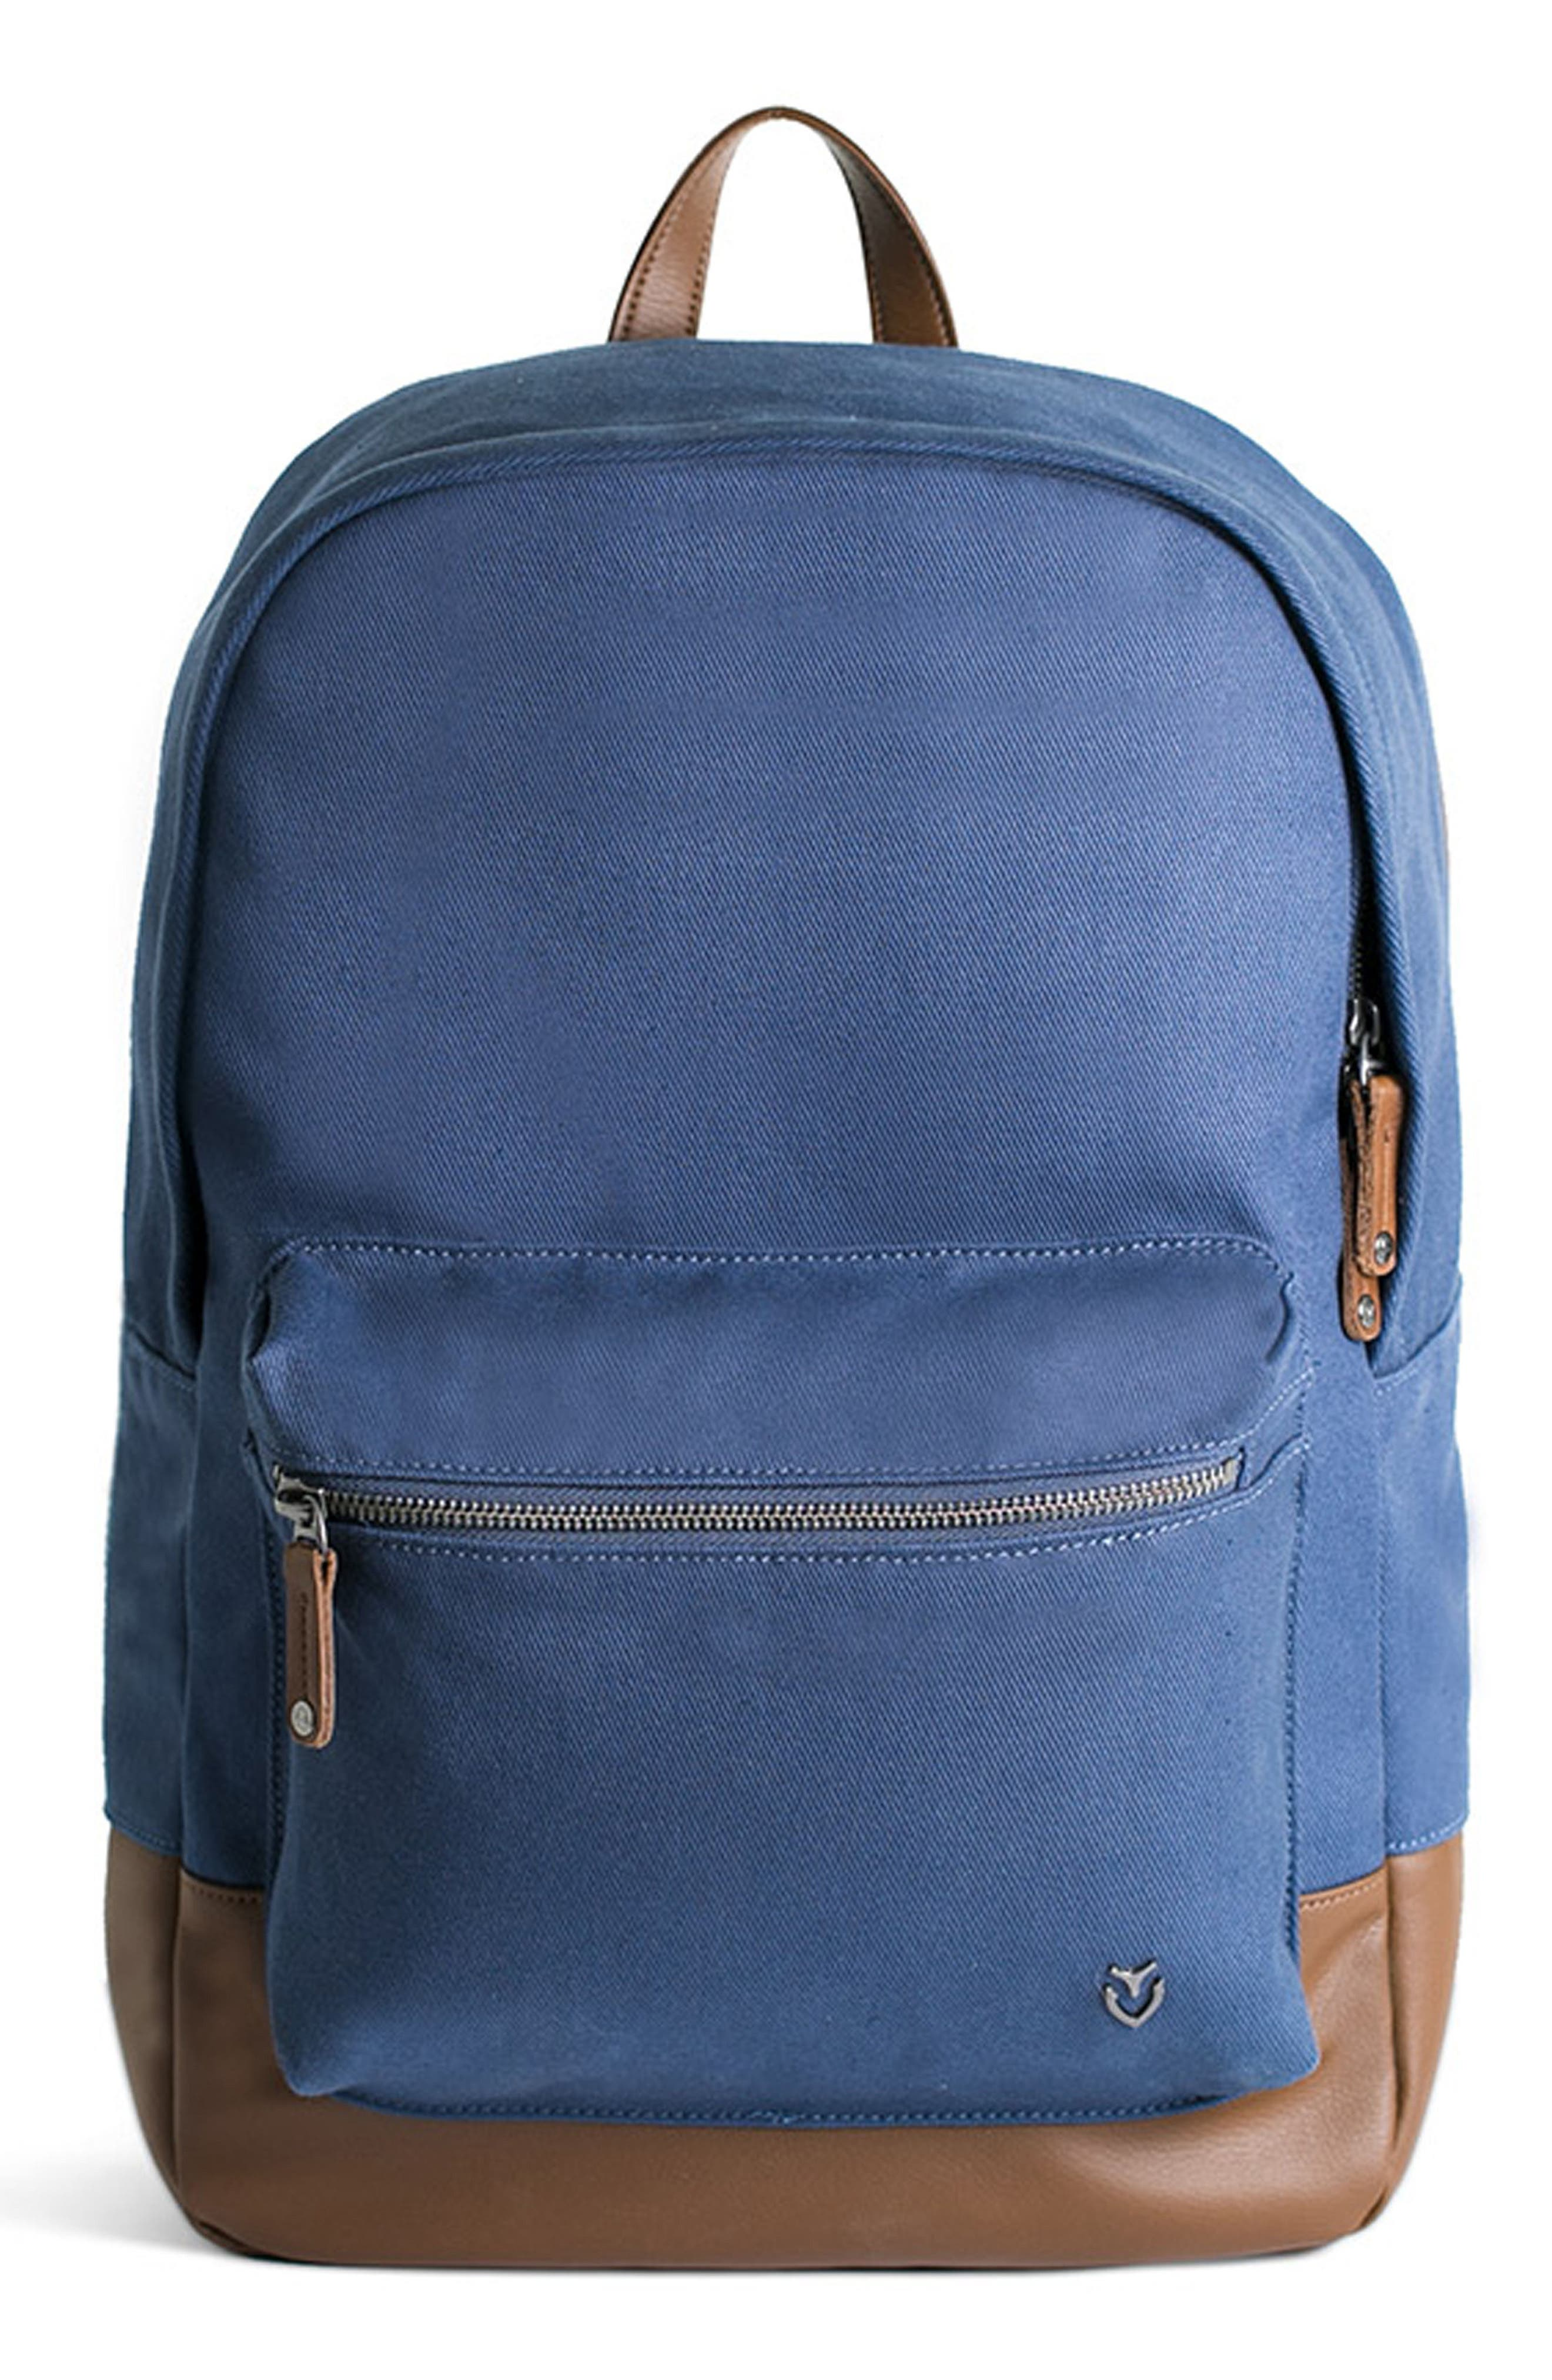 Vessel Refined Backpack - Blue